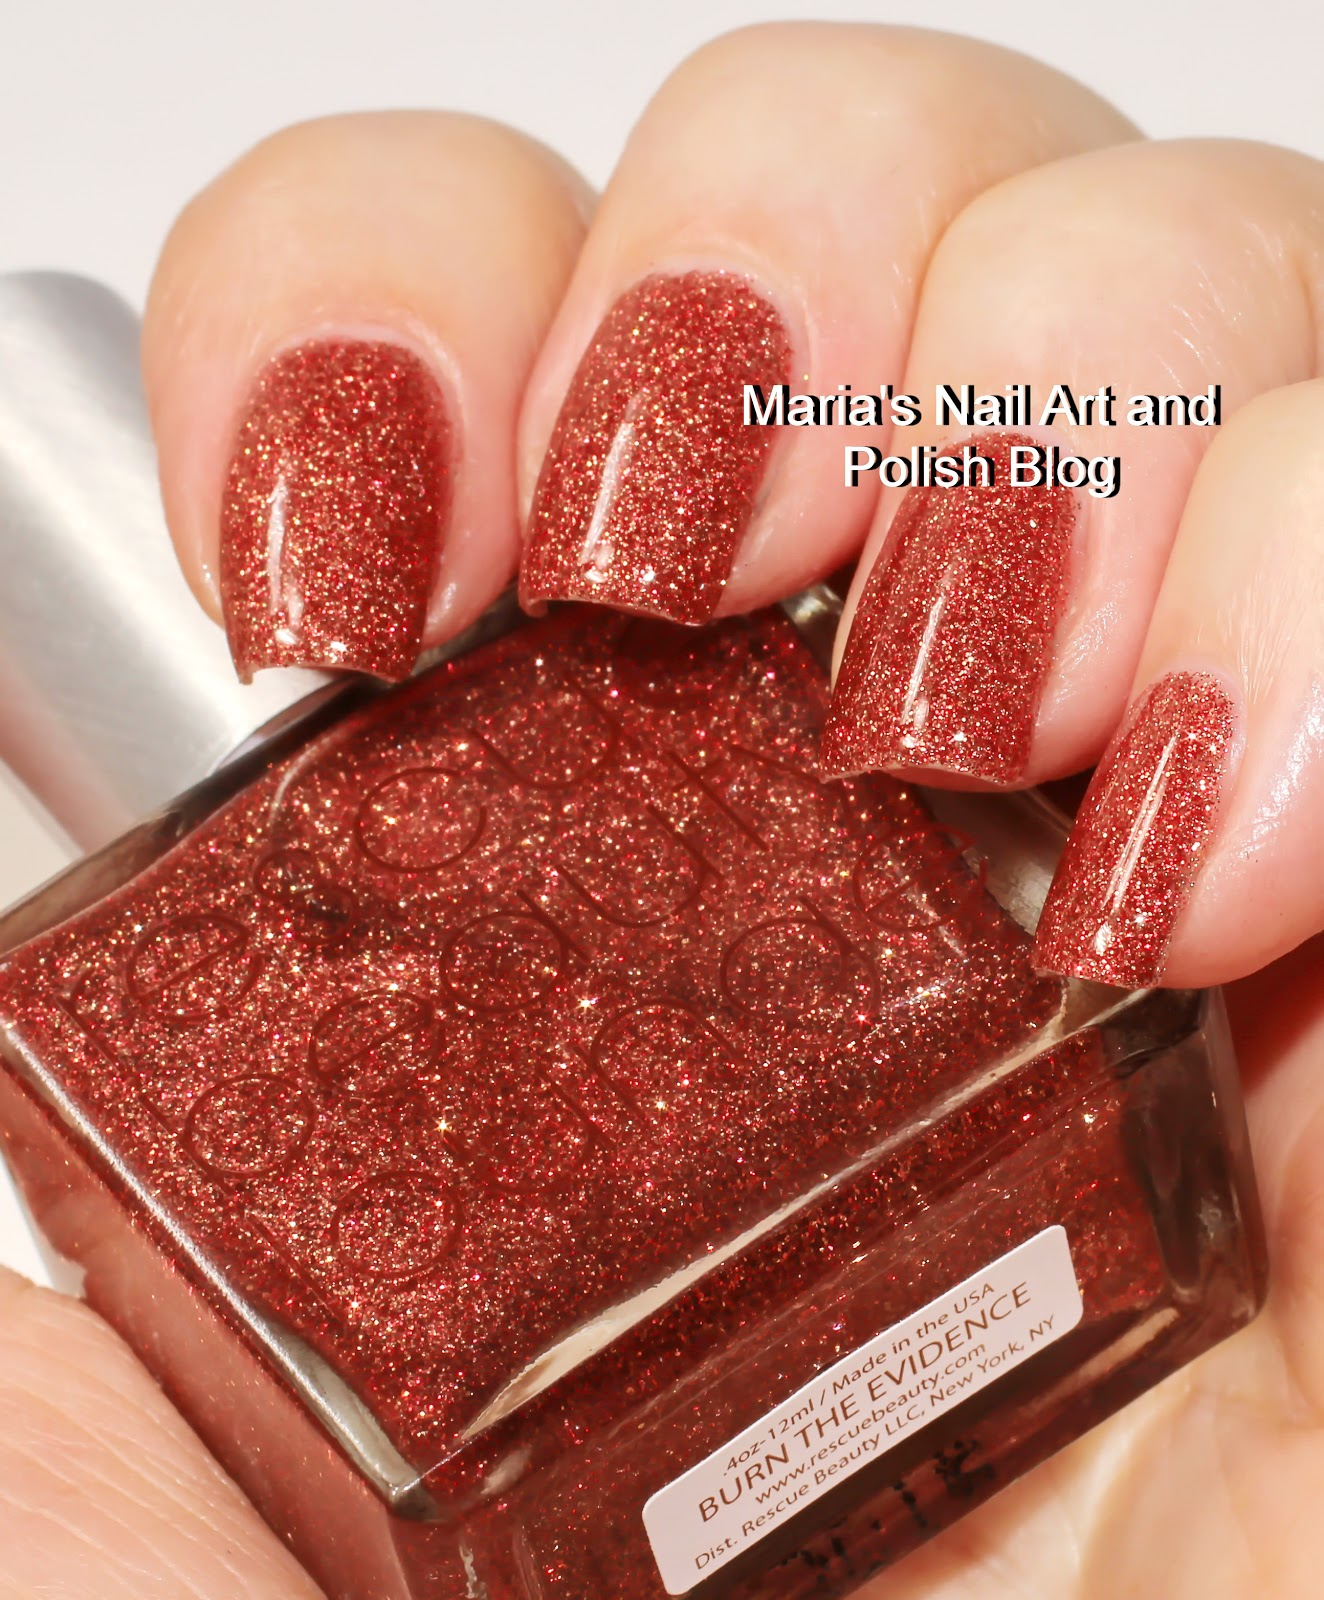 Marias Nail Art And Polish Blog: Rescue Beauty Lounge